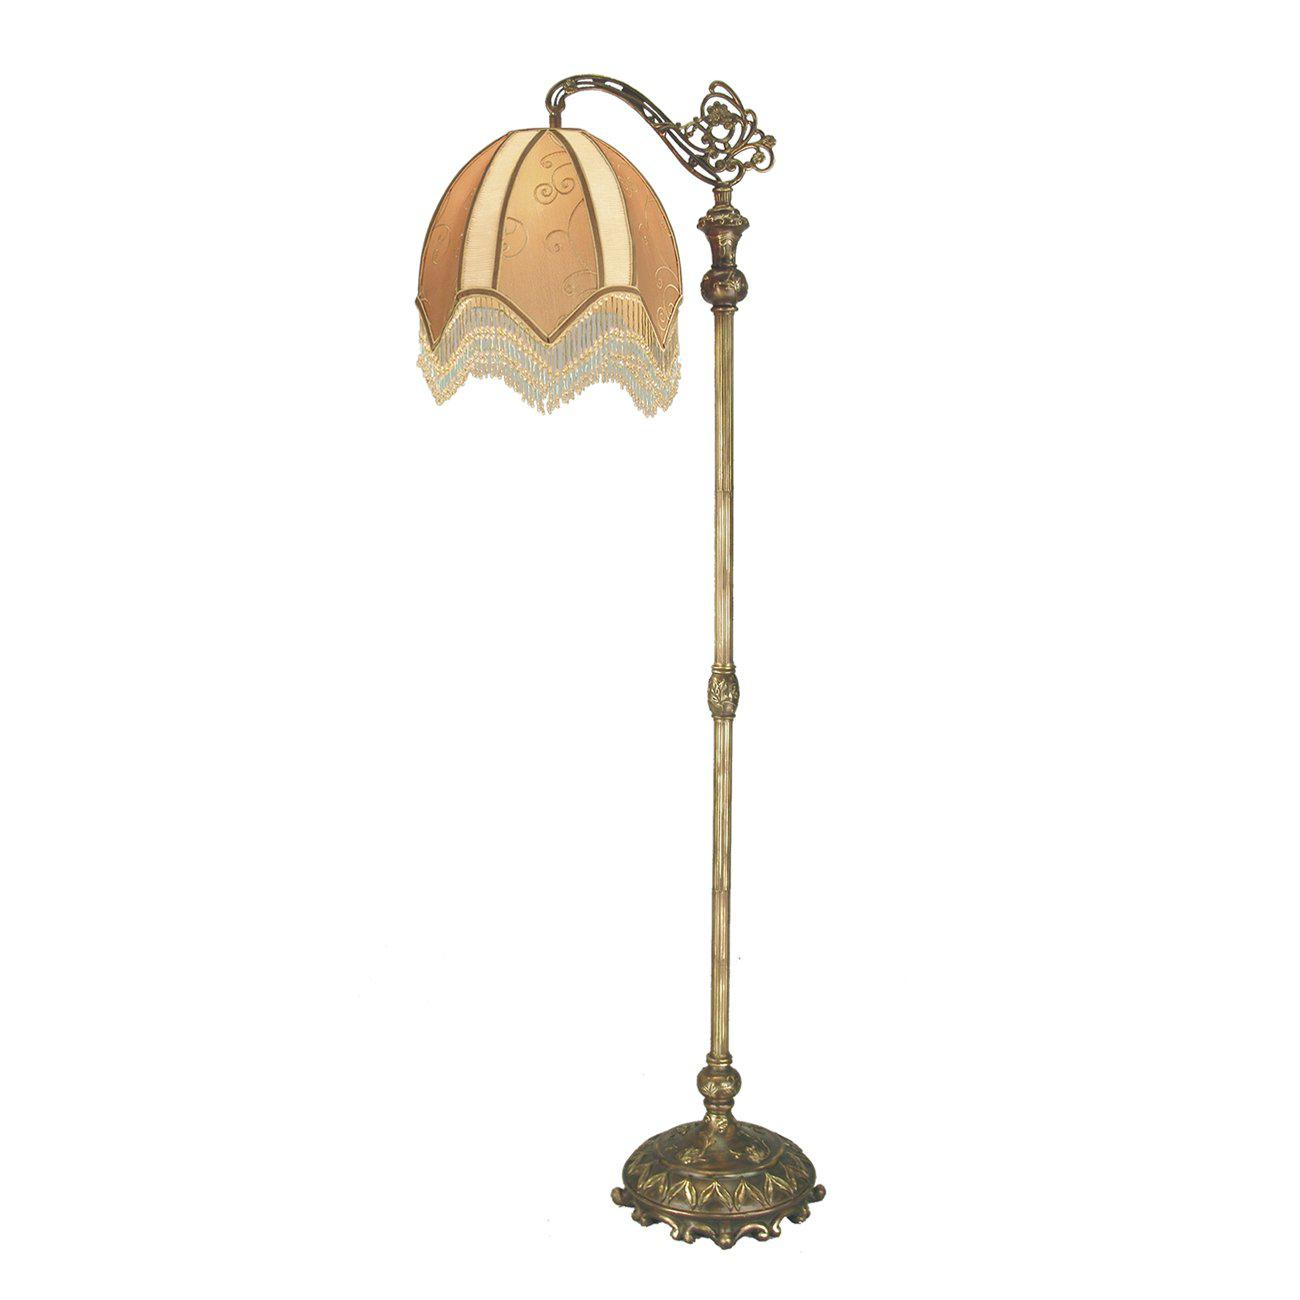 Image of: Antique Floor Lamps Ebay Uk